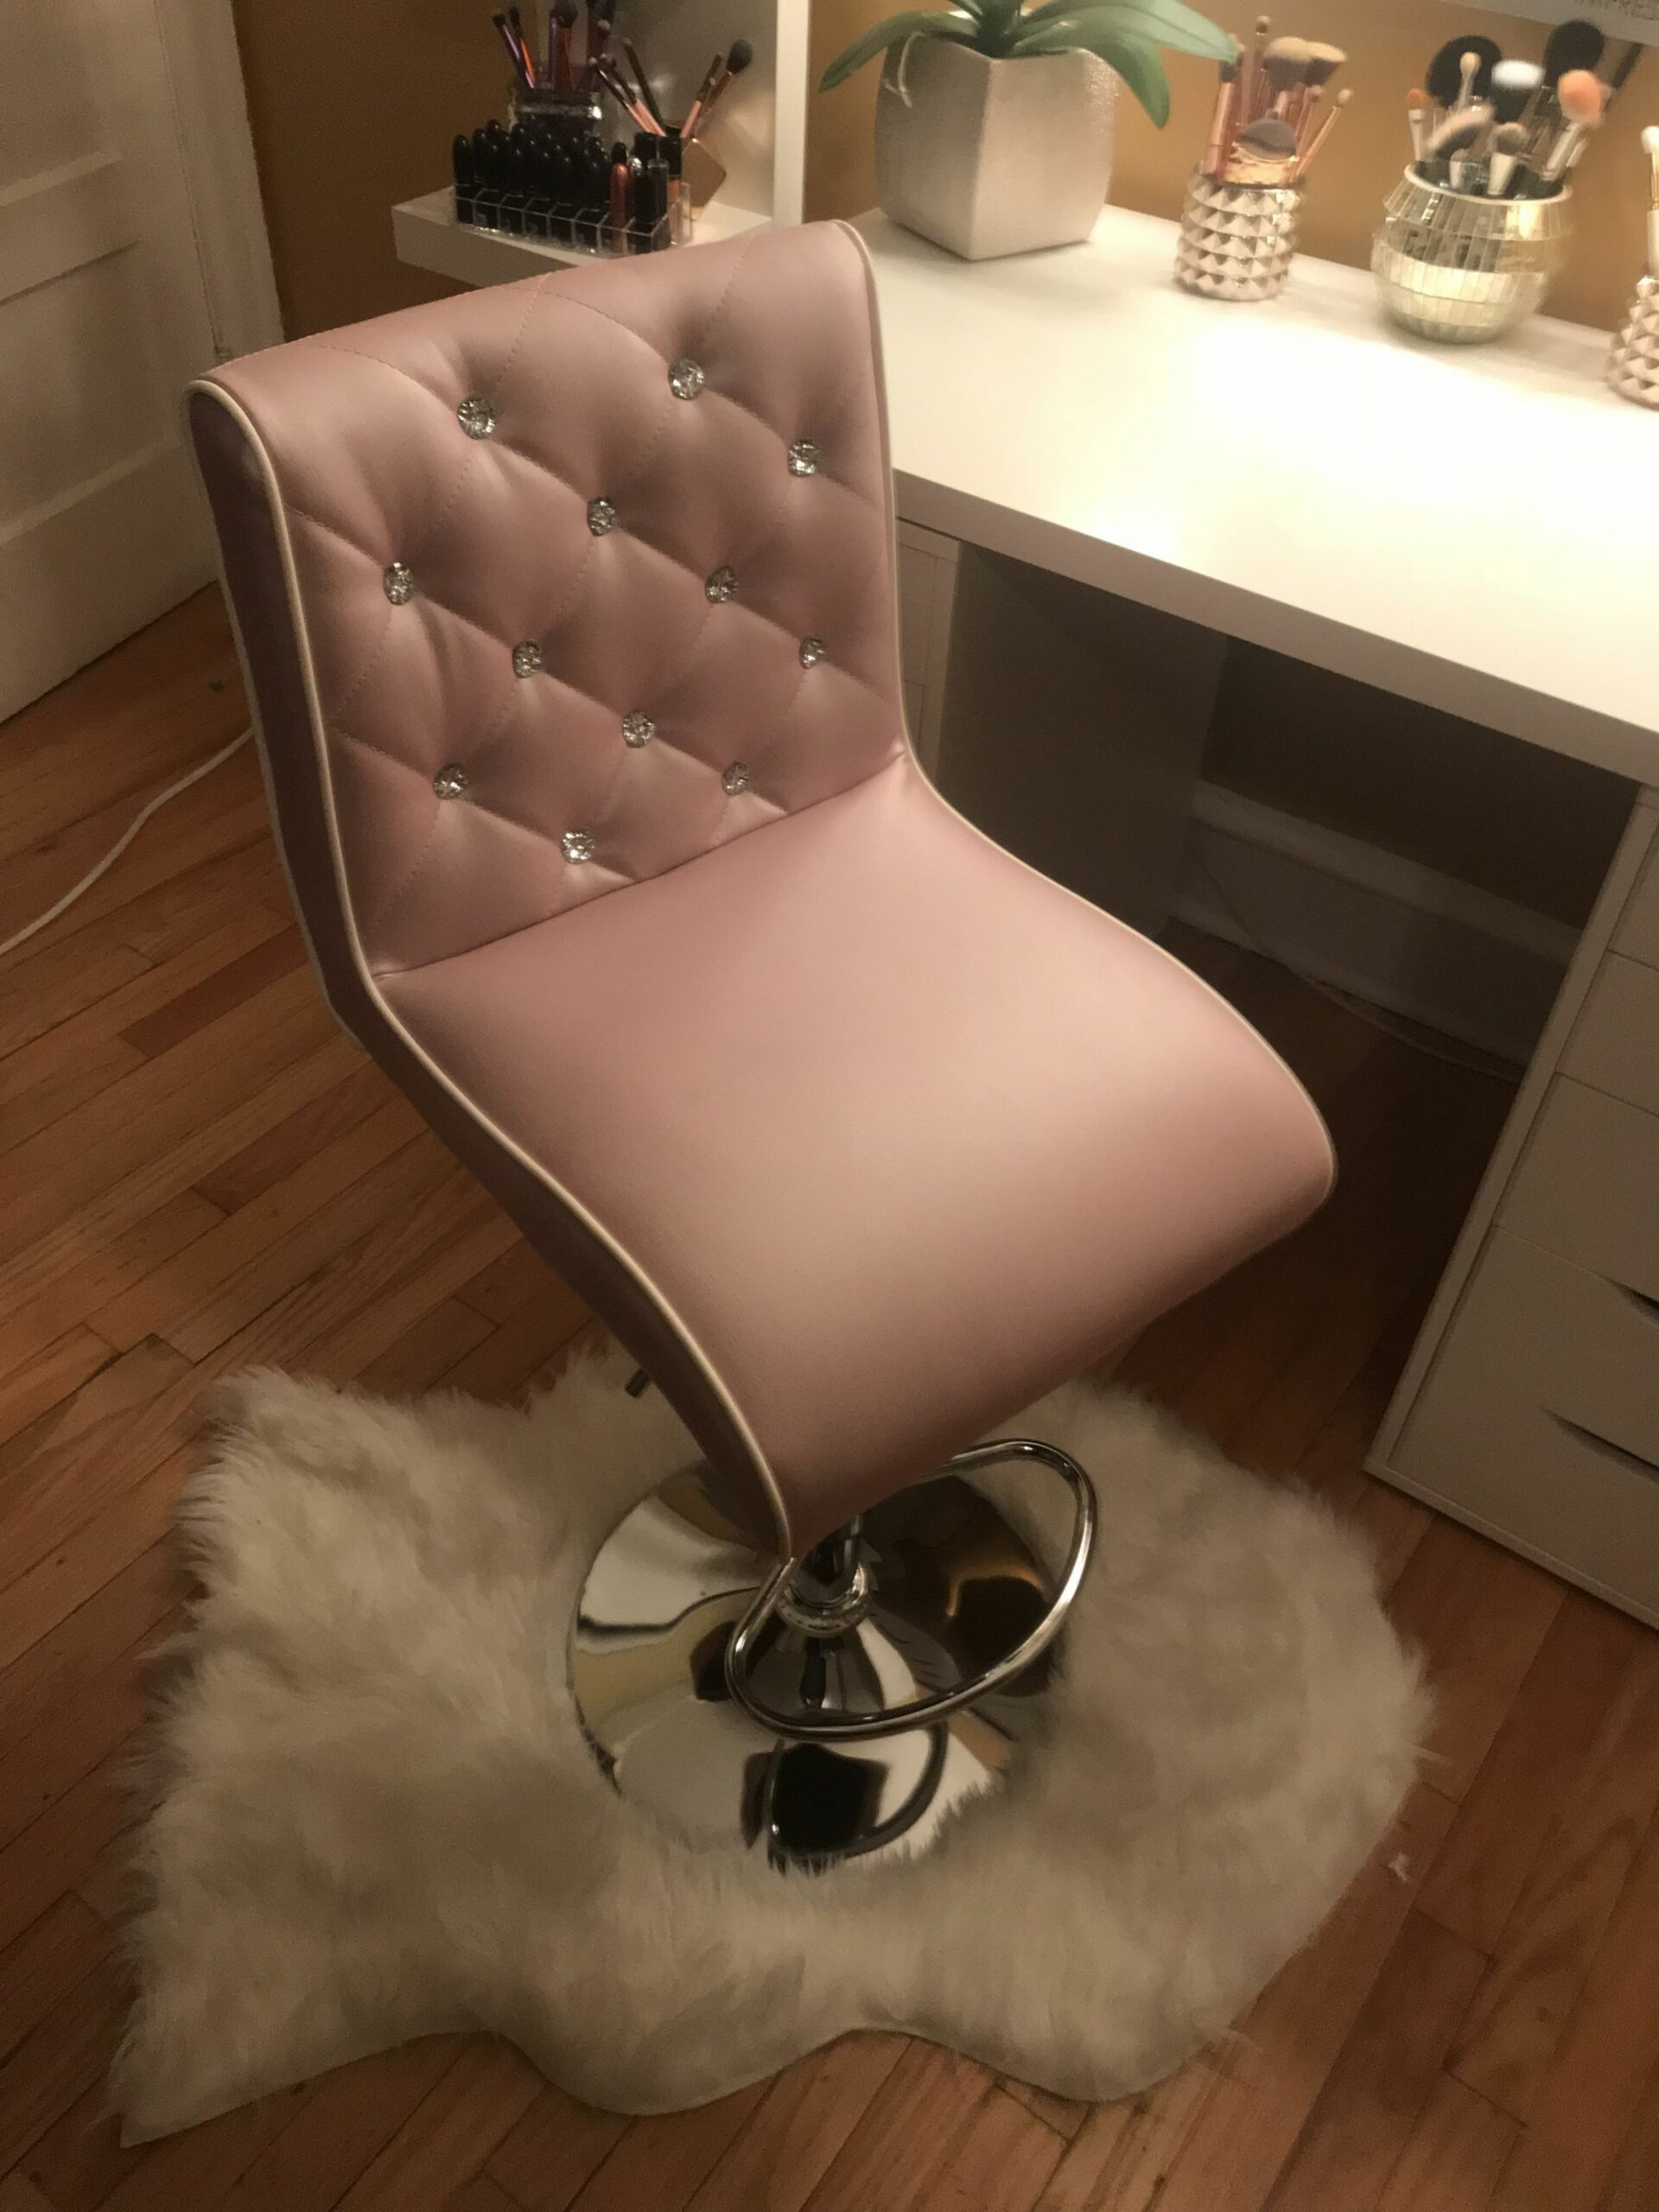 My vanity chair #VanityChair | Vanity chair, Bedroom desk chair ..